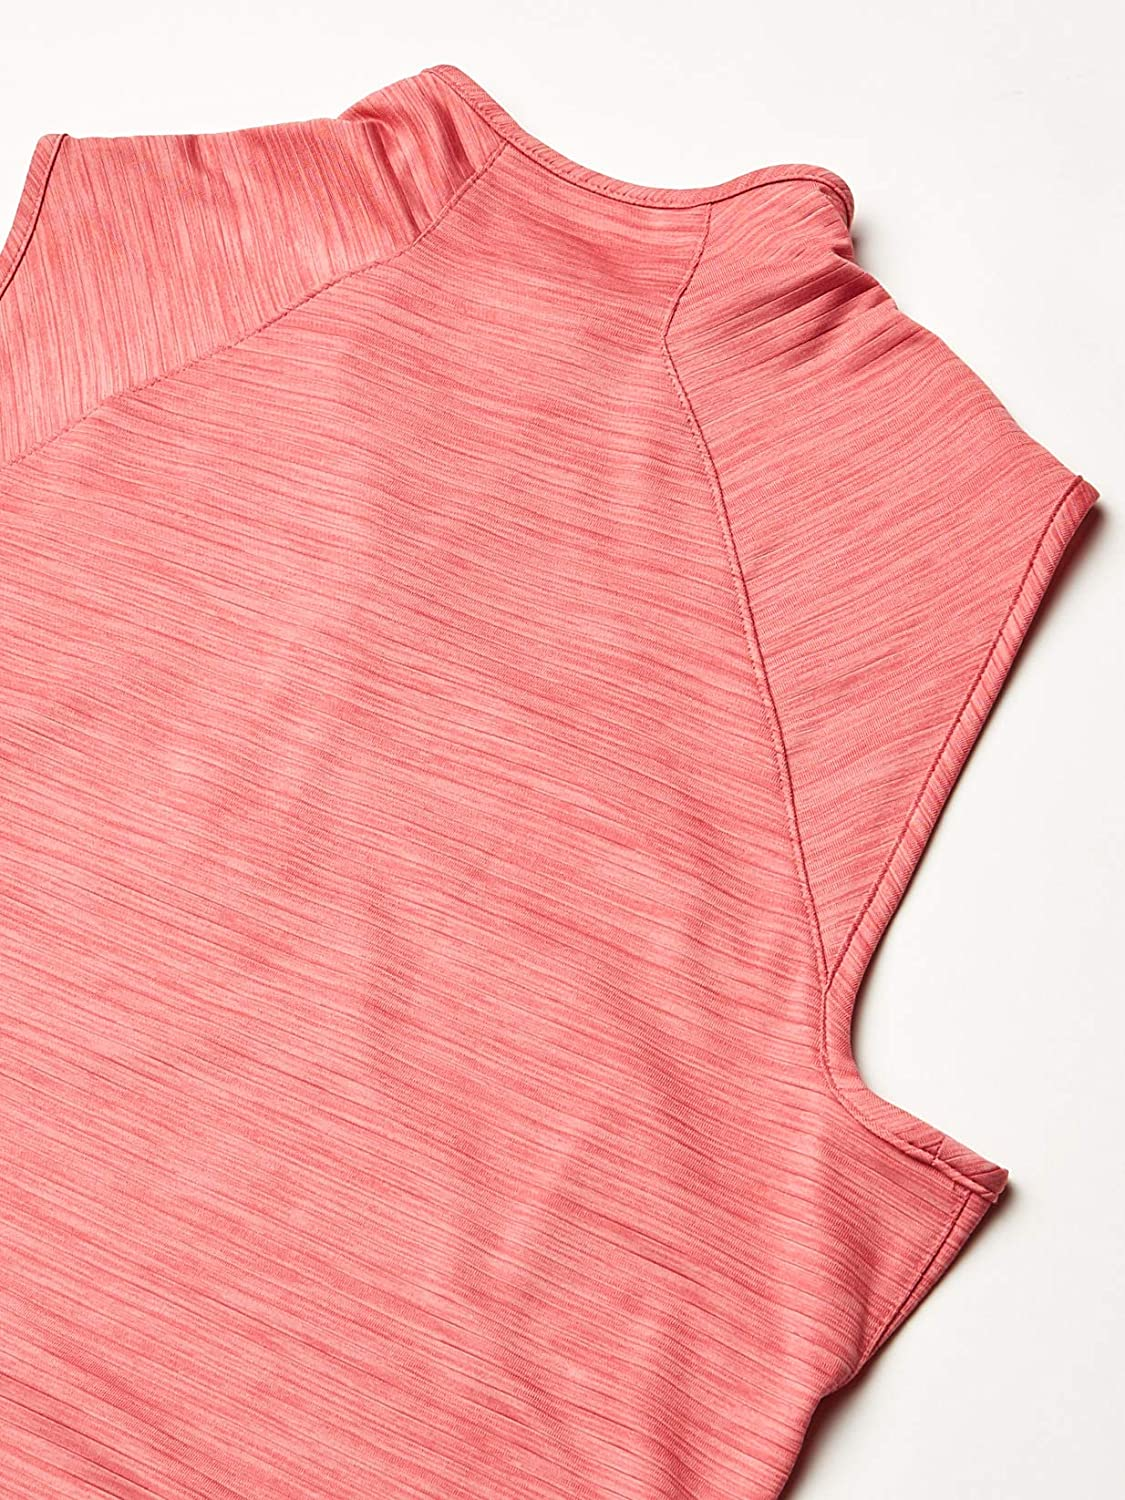 PUMA - 2020 Daily Mockneck, Polo Donna Rapture Rose Heather